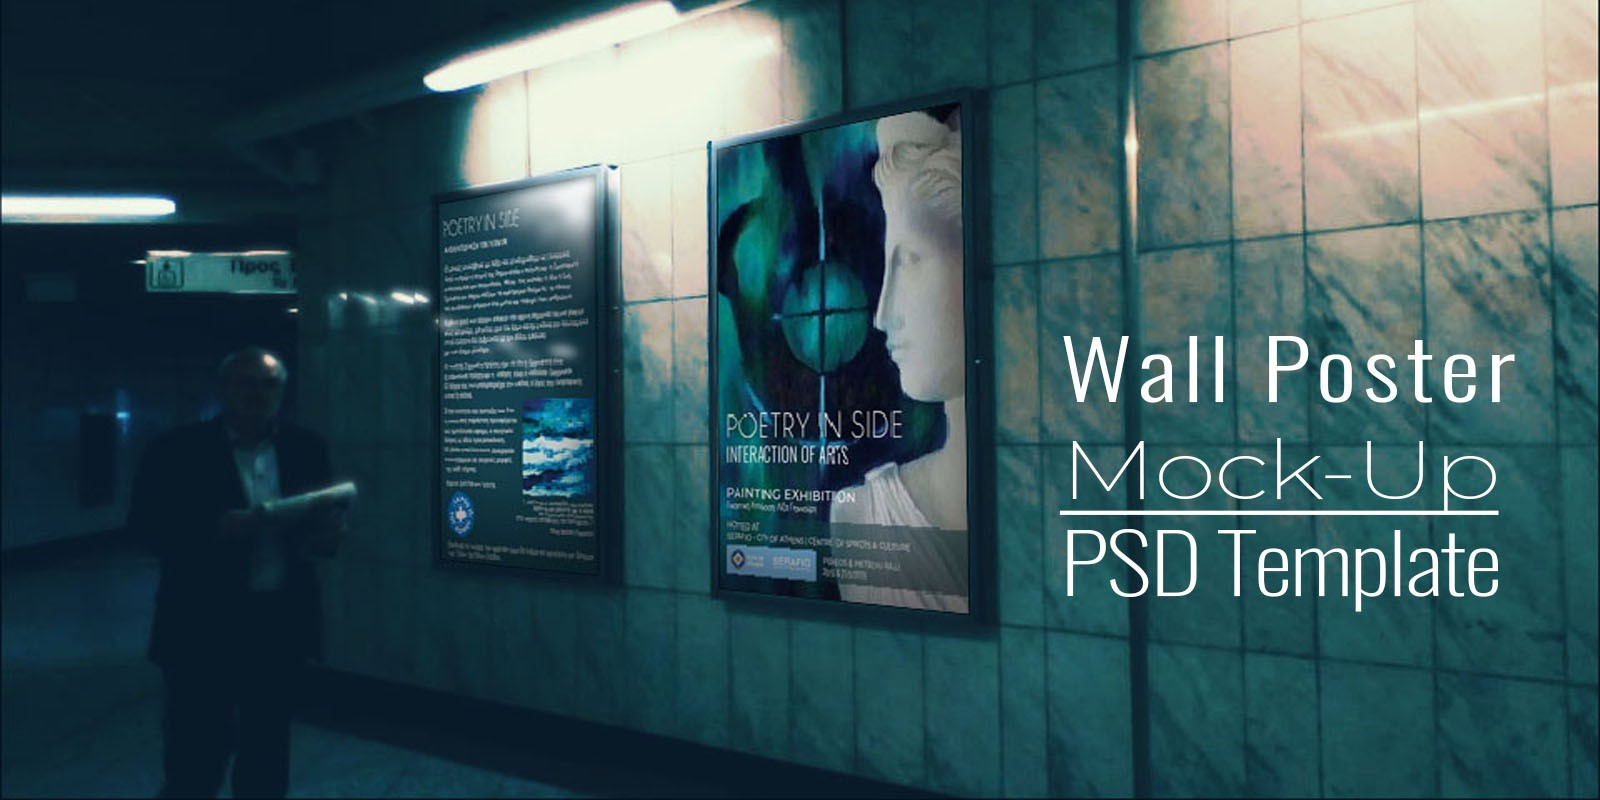 Wall Poster Mock-Up - PSD Template